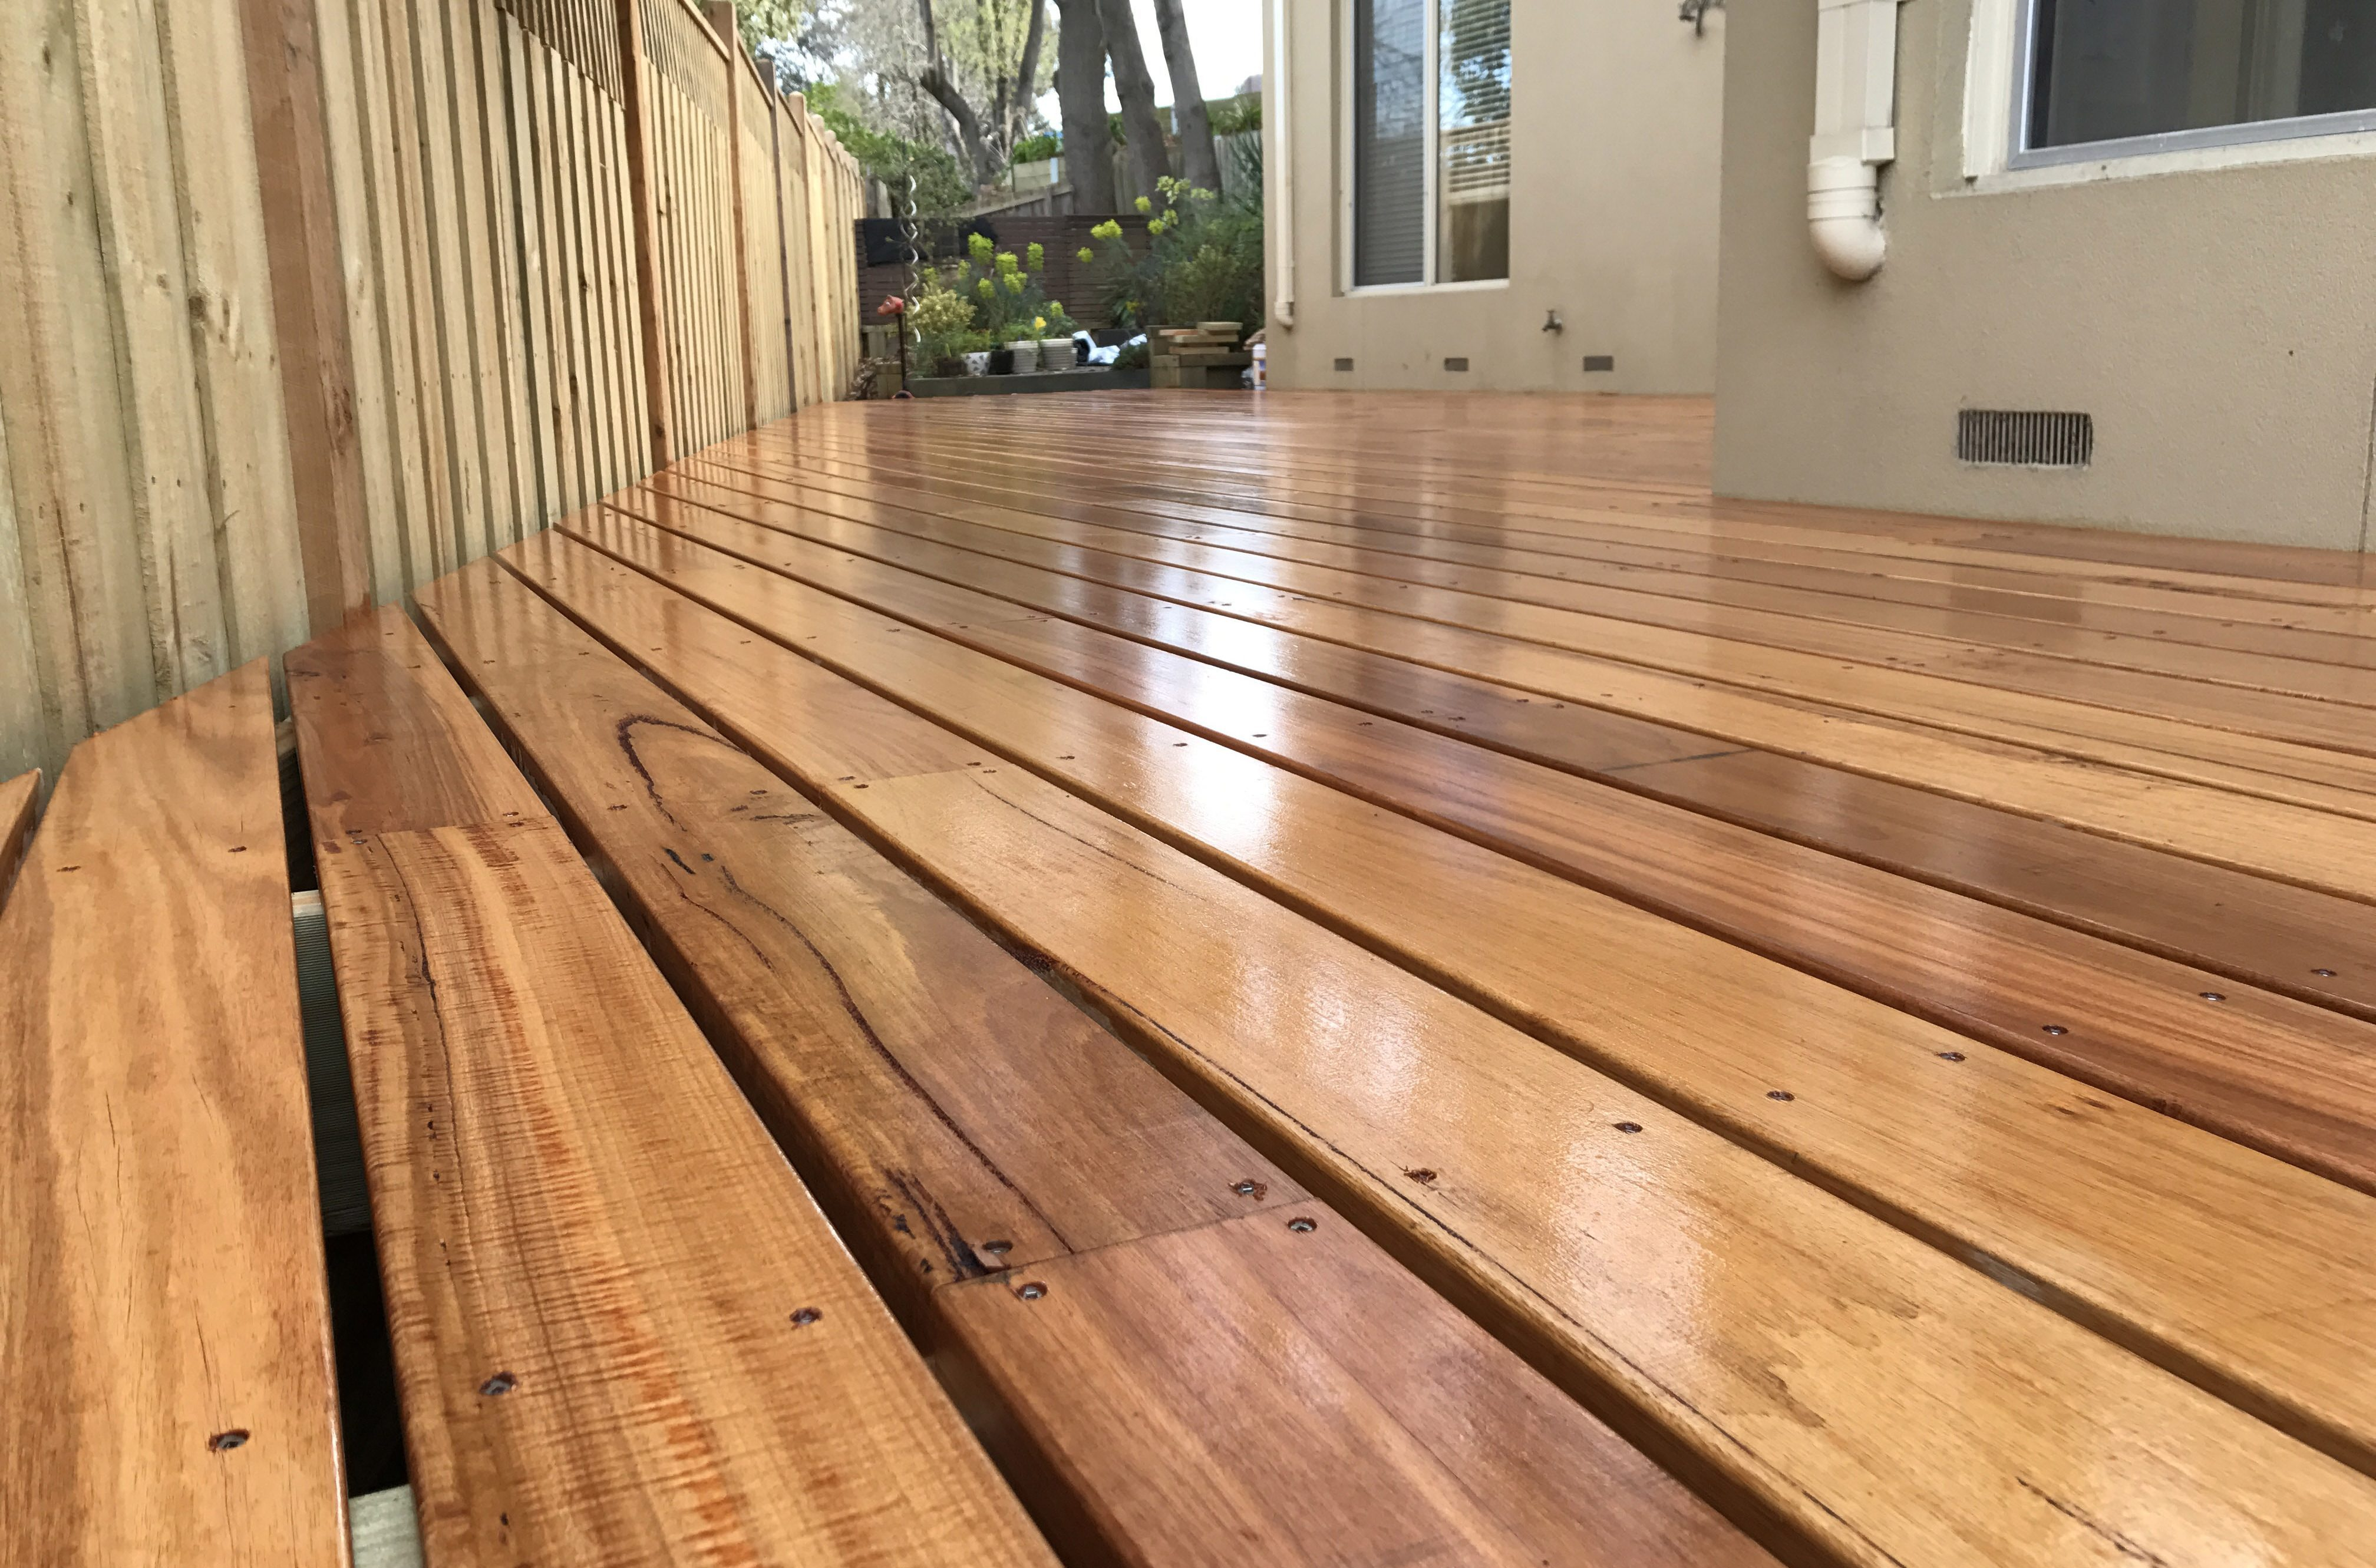 How To Design A Unique Deck? Plan Your Outdoor Living Space!